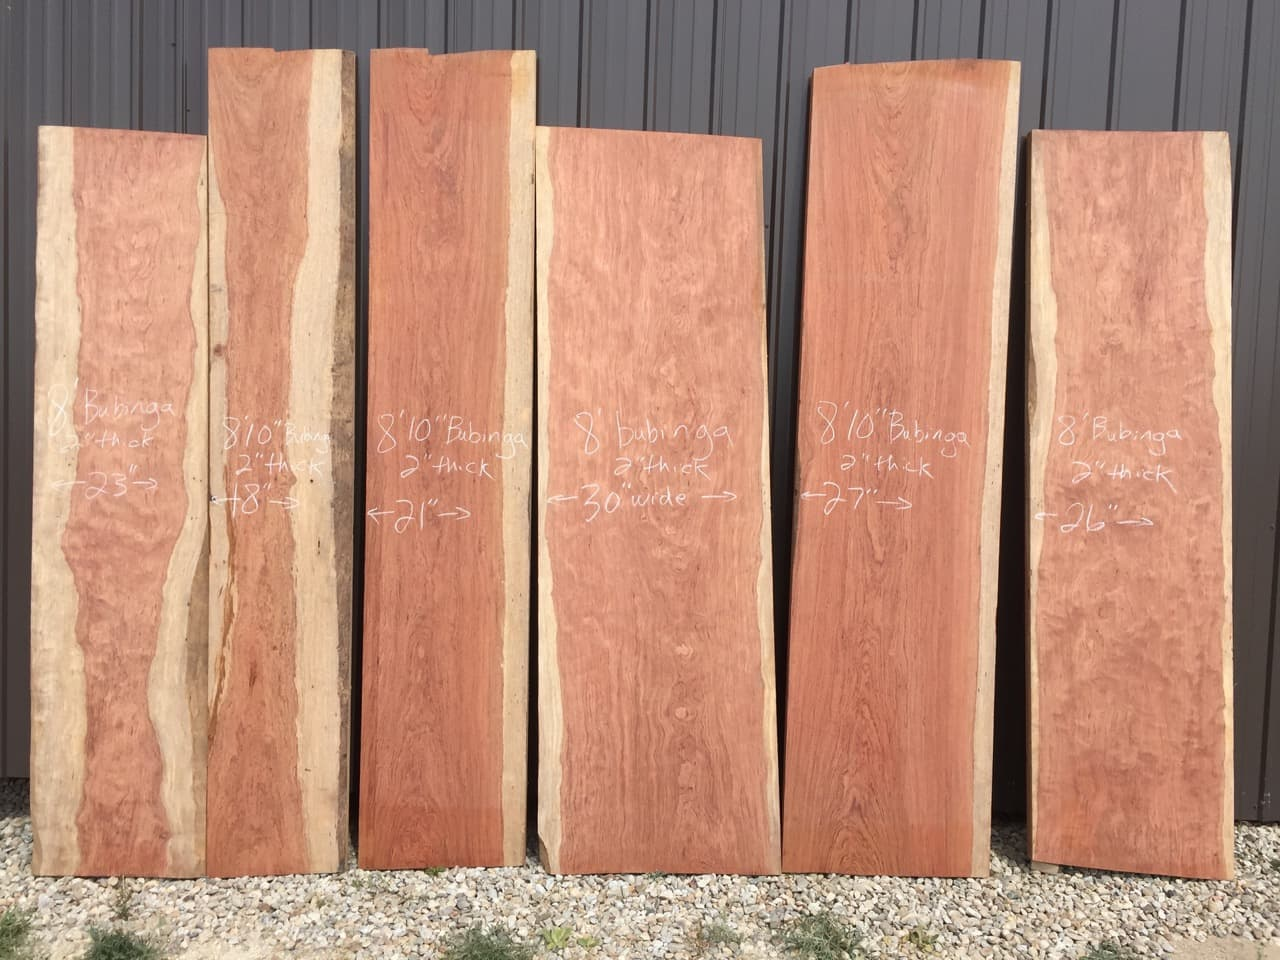 Large bubinga slabs for dining table or conference table.